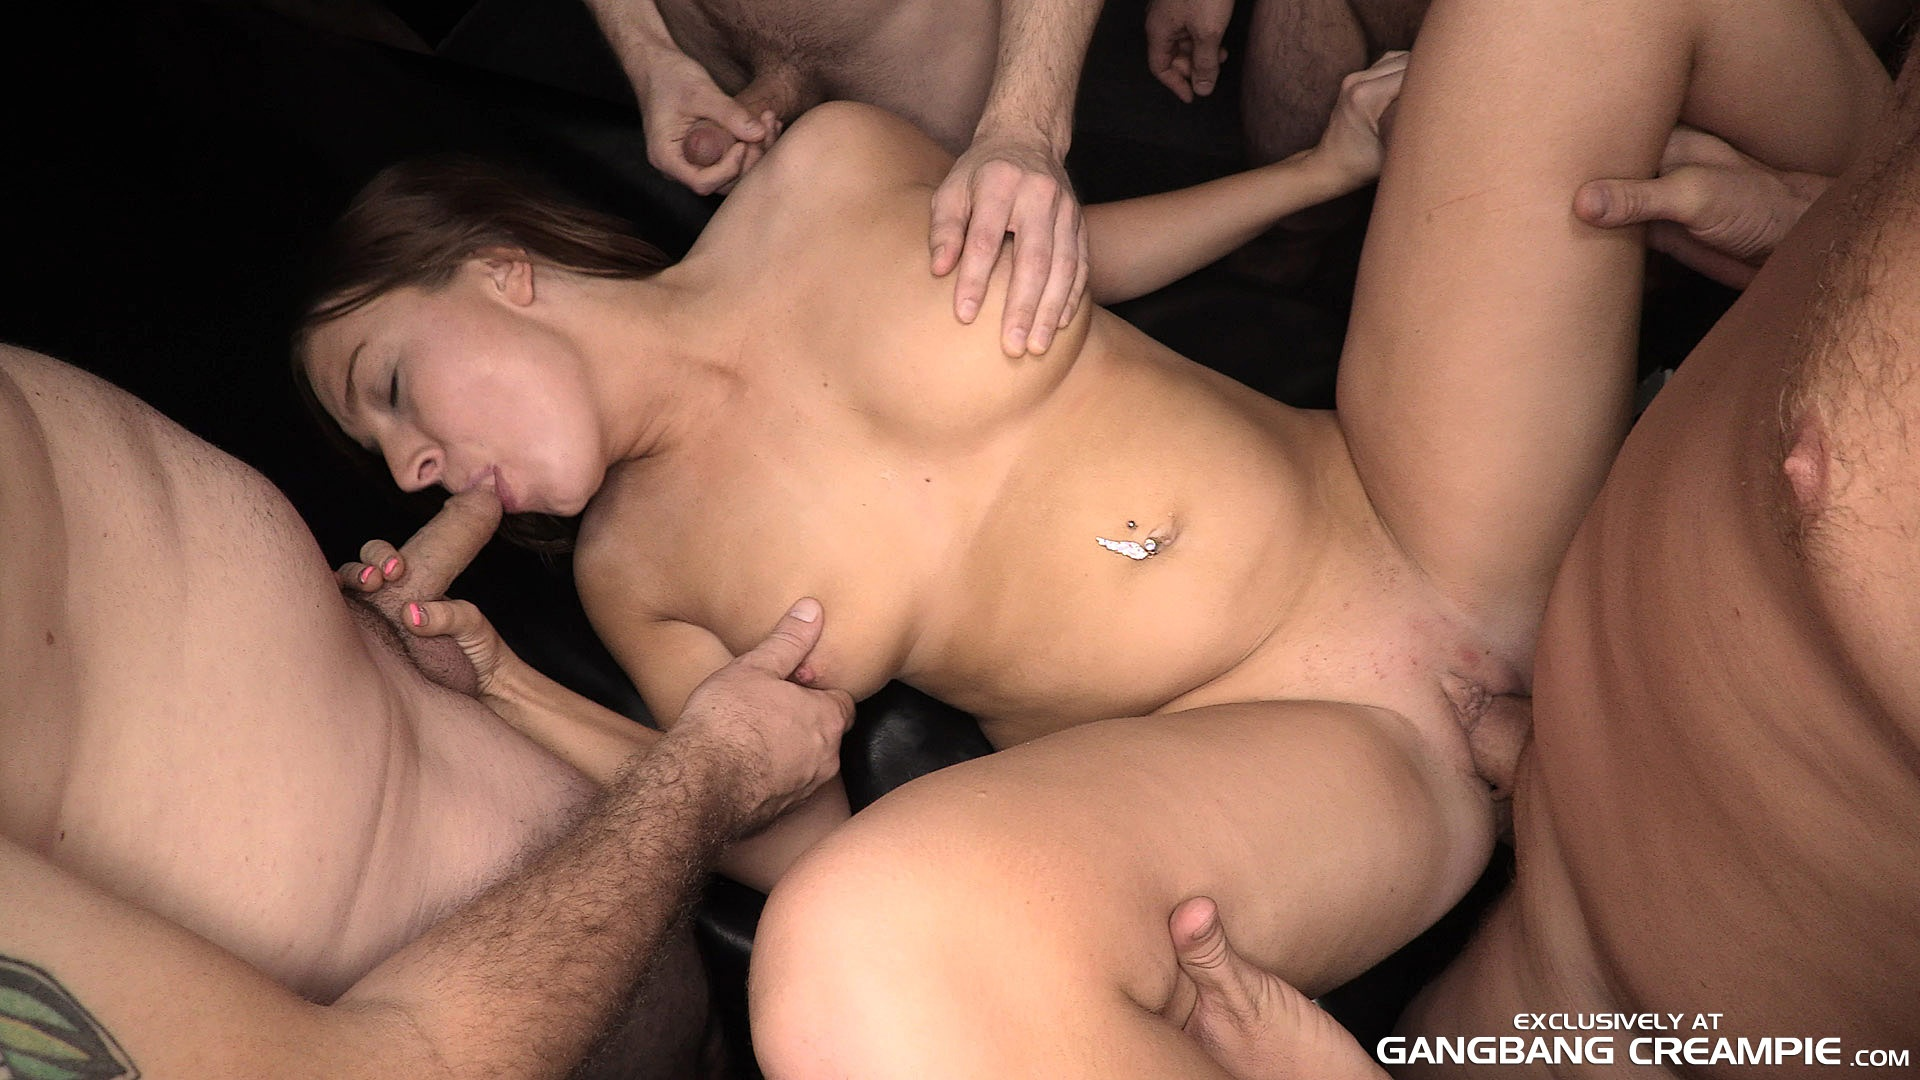 Creampie gangbang at the beach in july 2013